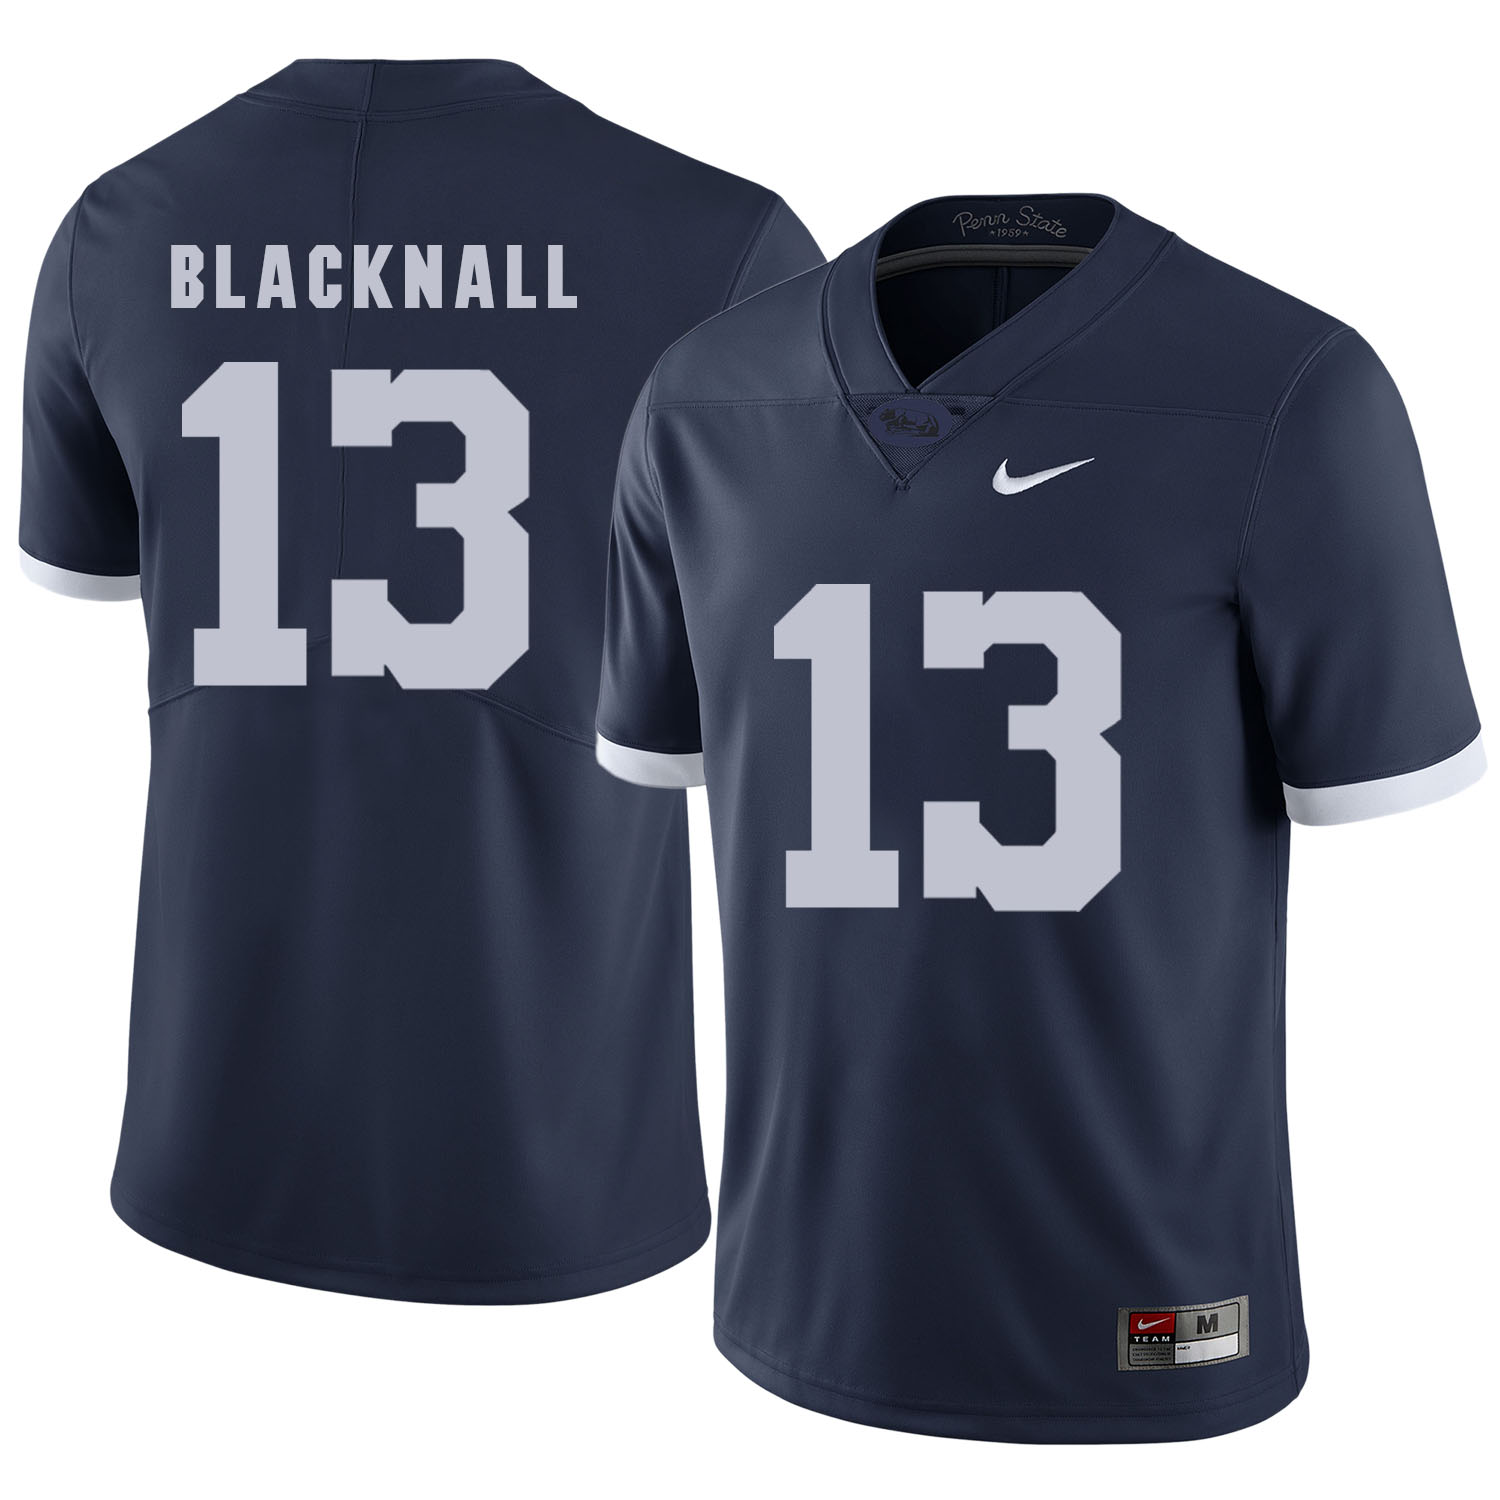 Penn State Nittany Lions 13 Saeed Blacknall Navy College Football Jersey